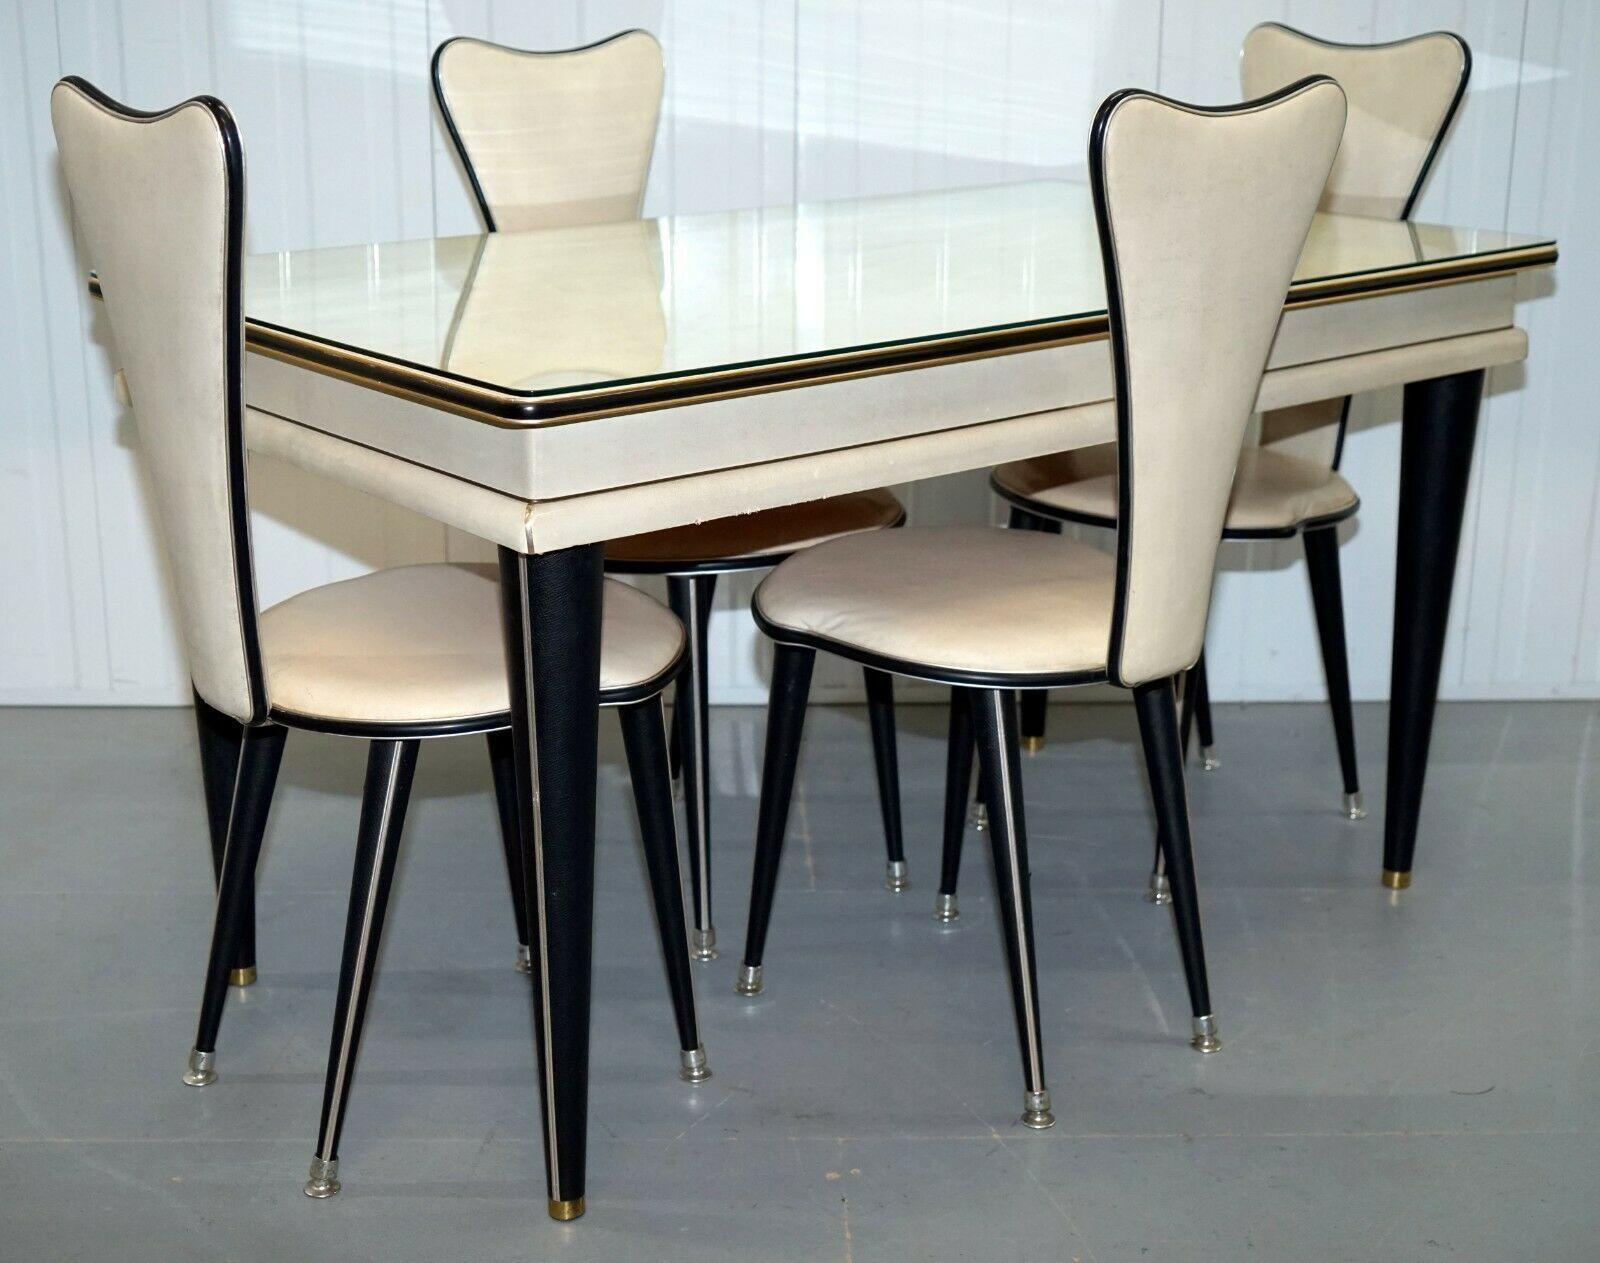 Umberto Mascagni 1950s Credenza Dining Table Chairs Sideboard Also Available Humberto Mascagni Vinterior